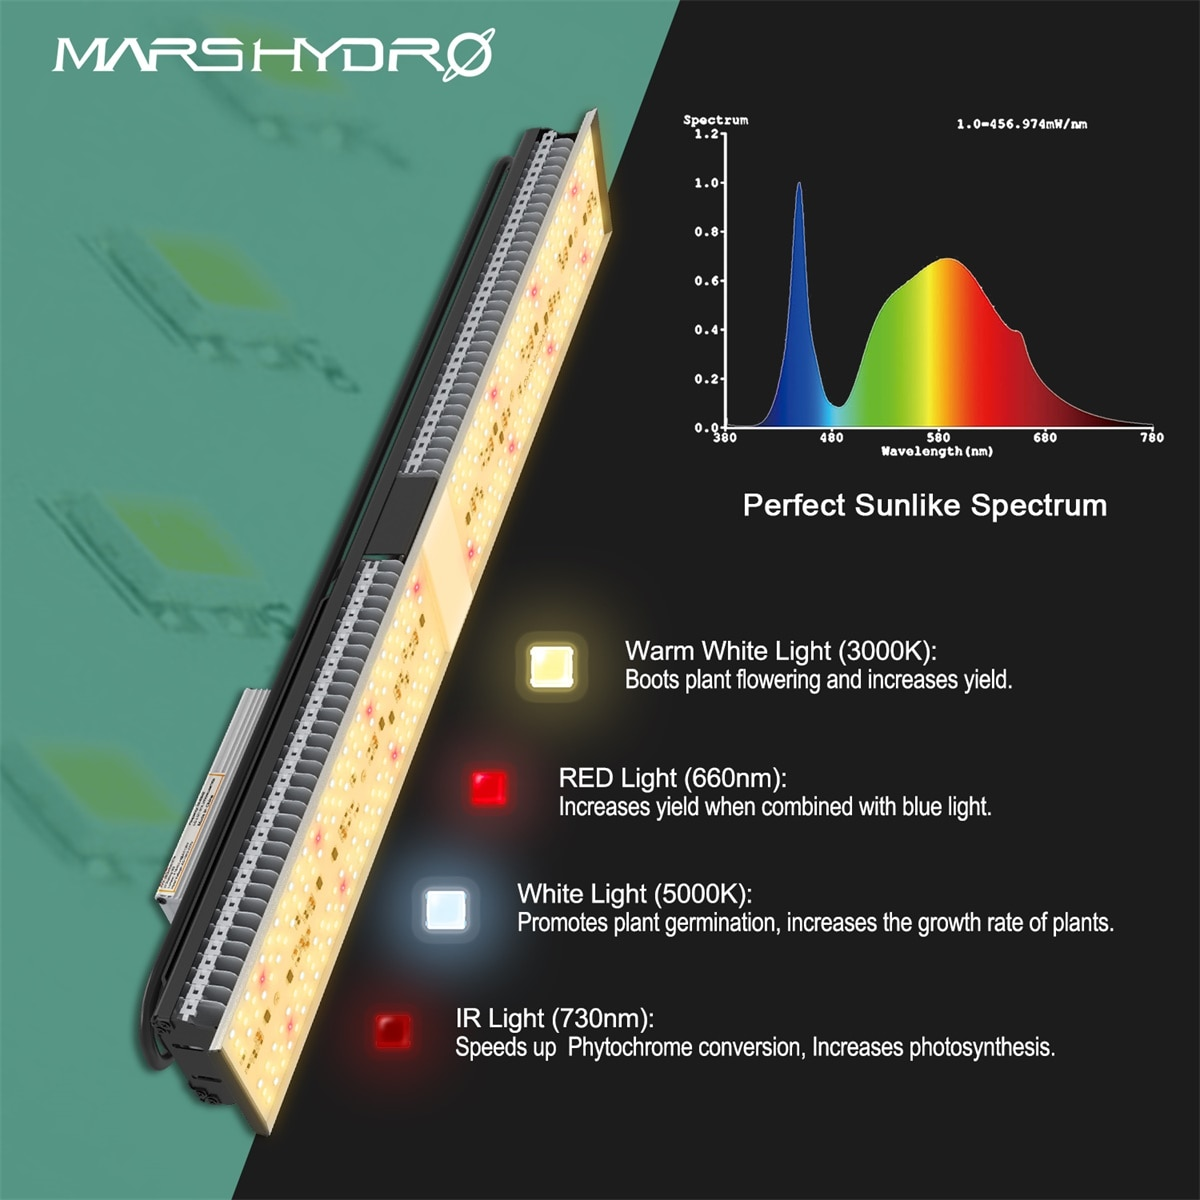 Mars Hydro SP 150 3000 6500 Full Spectrum LED Grow Light Samsung Lm301D Meanwell Driver Hydroponics Phytolamp for Indoor Plants enlarge